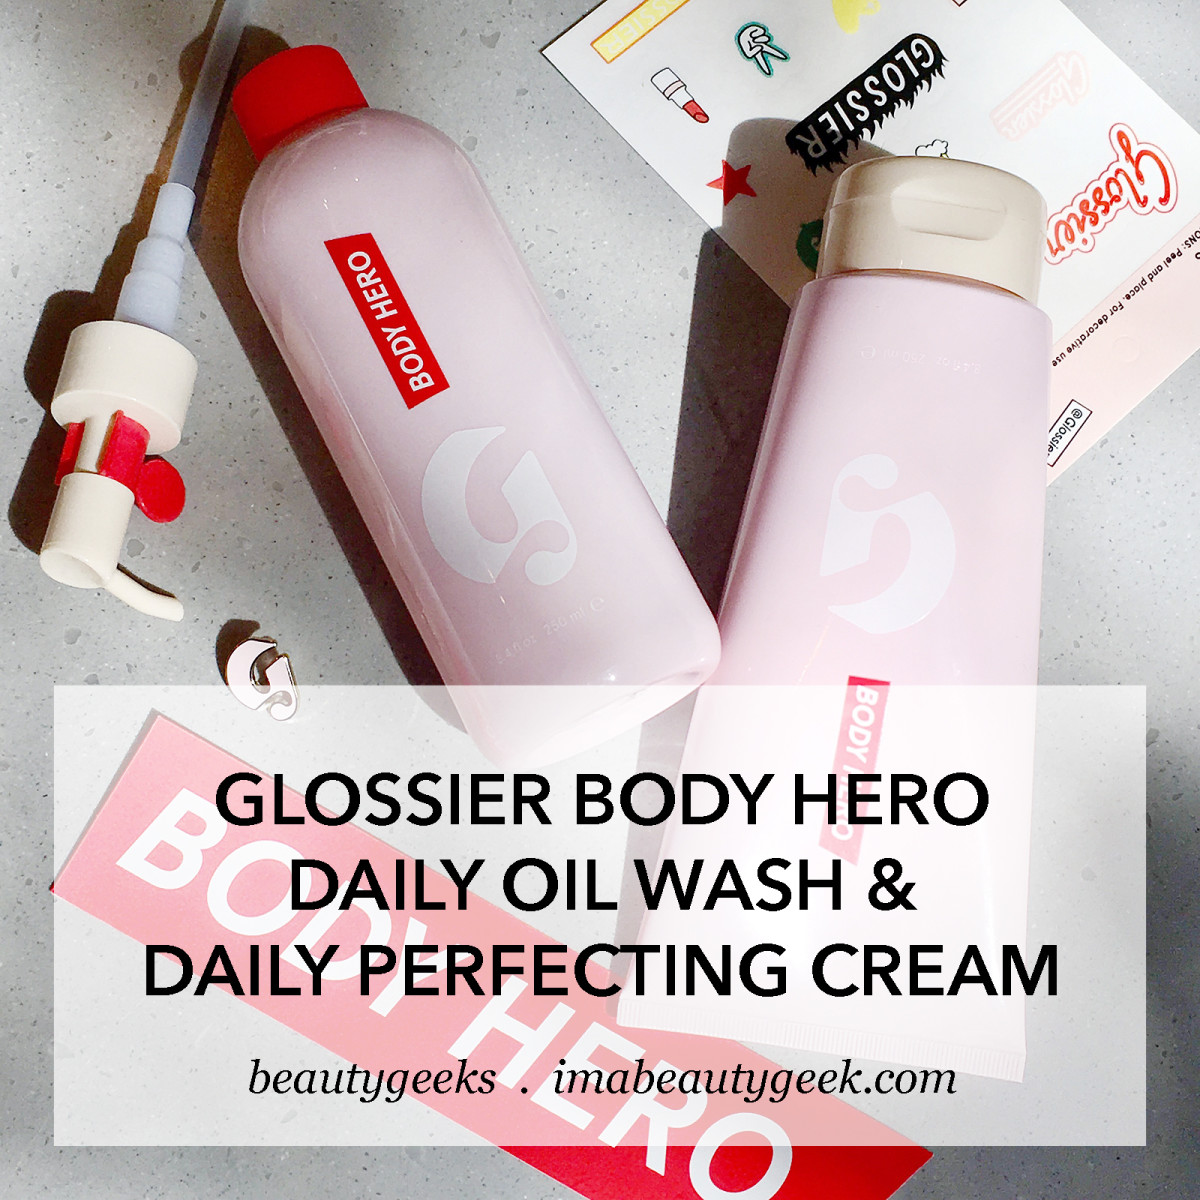 Glossier Body Hero Daily Oil Wash & Daily Perfecting Cream-BEAUTYGEEKS review